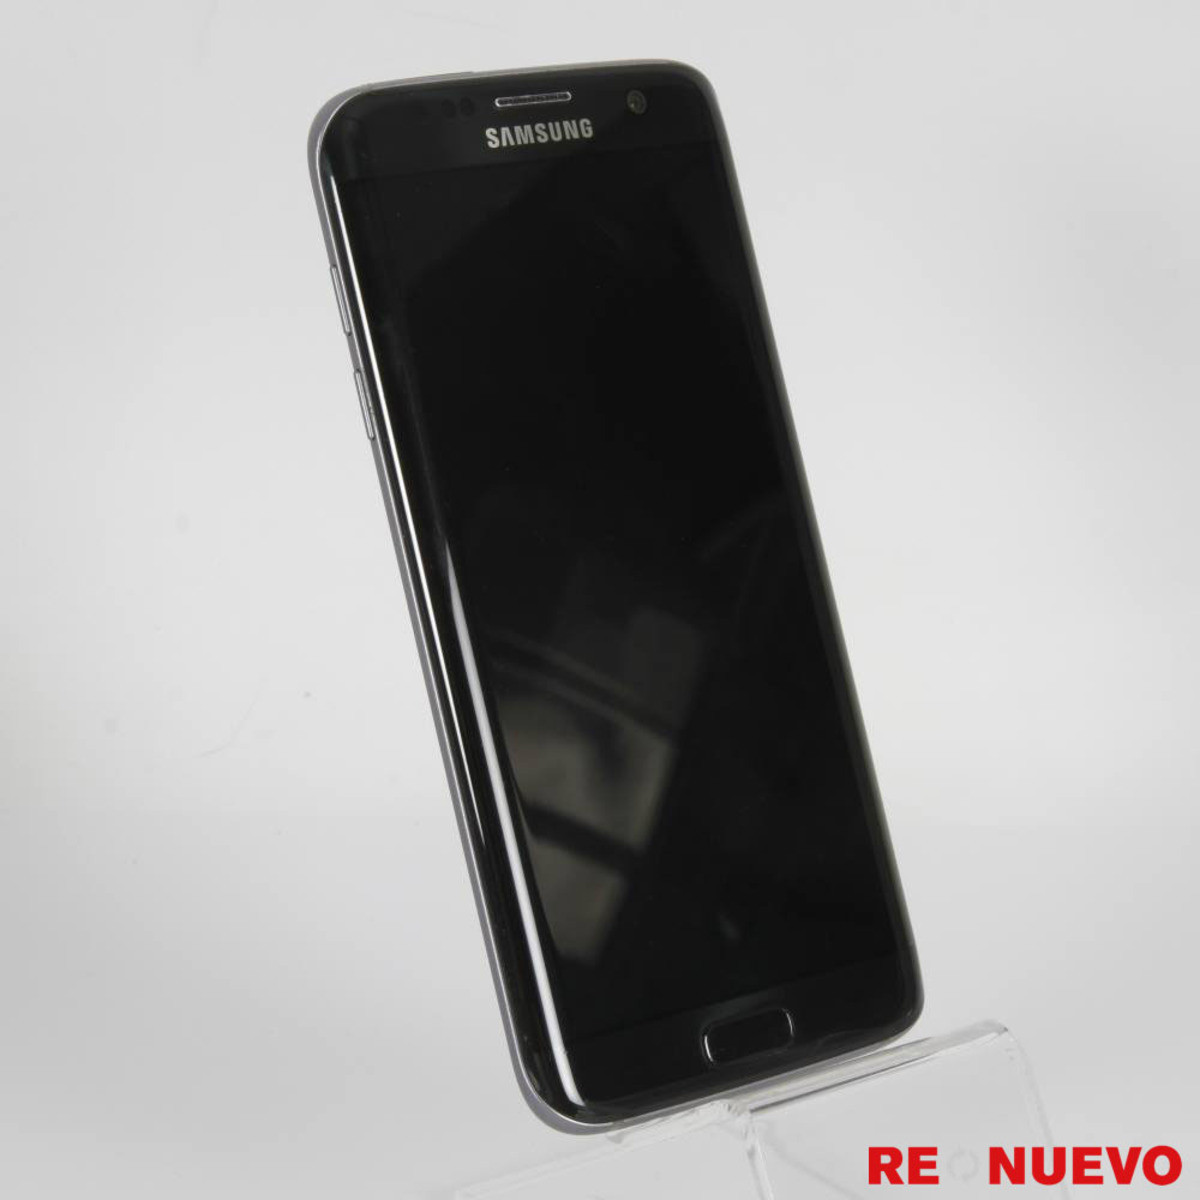 Comprar Galaxy S7 Edge Mejor Prar Samsung Galaxy S7 Edge De 32gb Black Yx De Of Comprar Galaxy S7 Edge Perfecto Samsung Galaxy S7 Edge Celulares Costa Rica